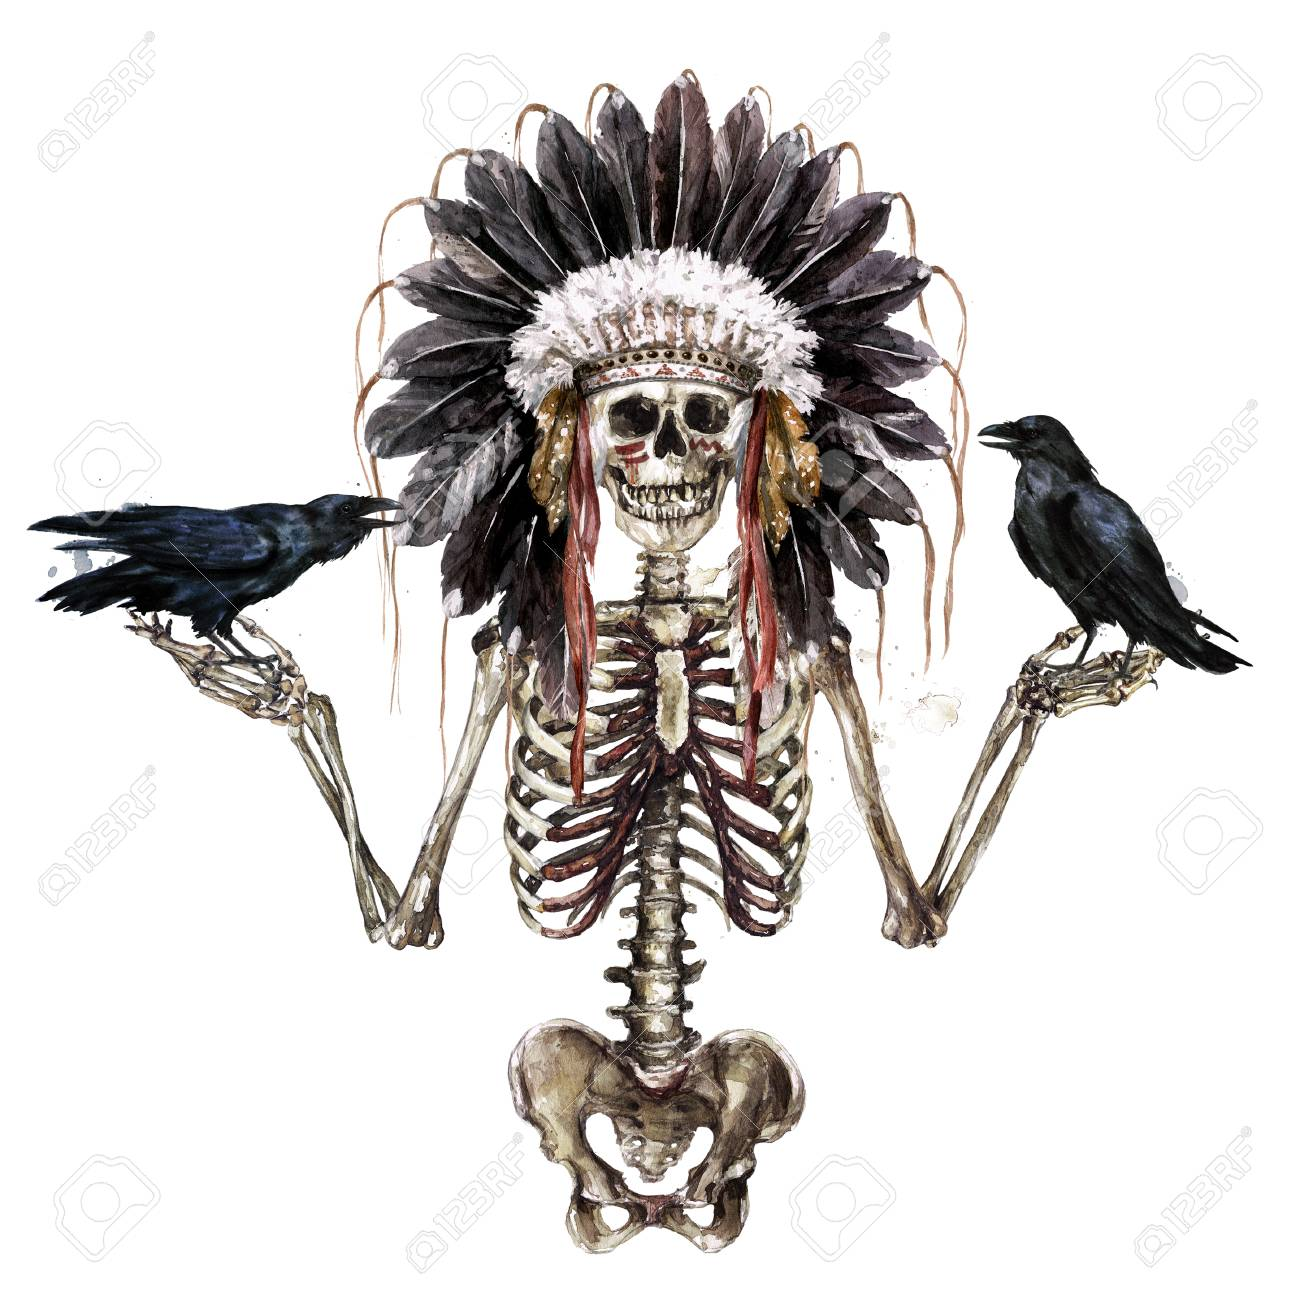 Human Skeleton Decorated With War Bonnet. Watercolor Illustration. Stock  Photo, Picture And Royalty Free Image. Image 106199345.